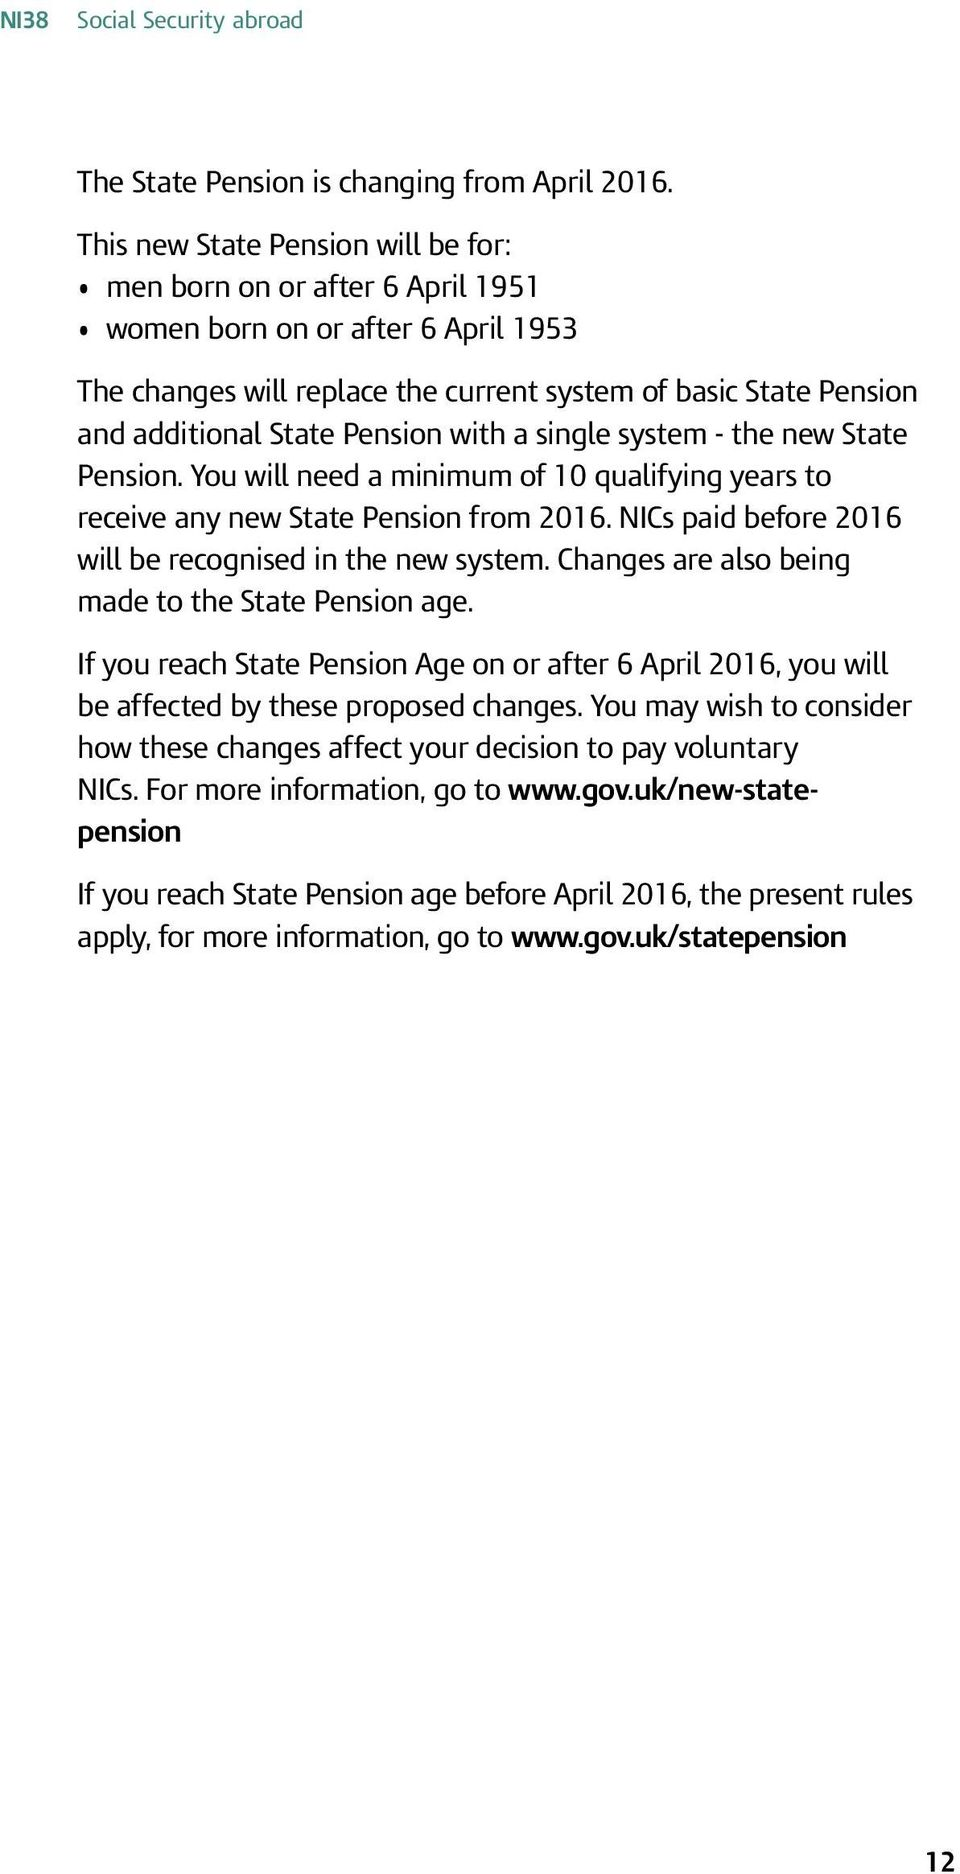 Pension with a single system - the new State Pension. You will need a minimum of 10 qualifying years to receive any new State Pension from 2016.